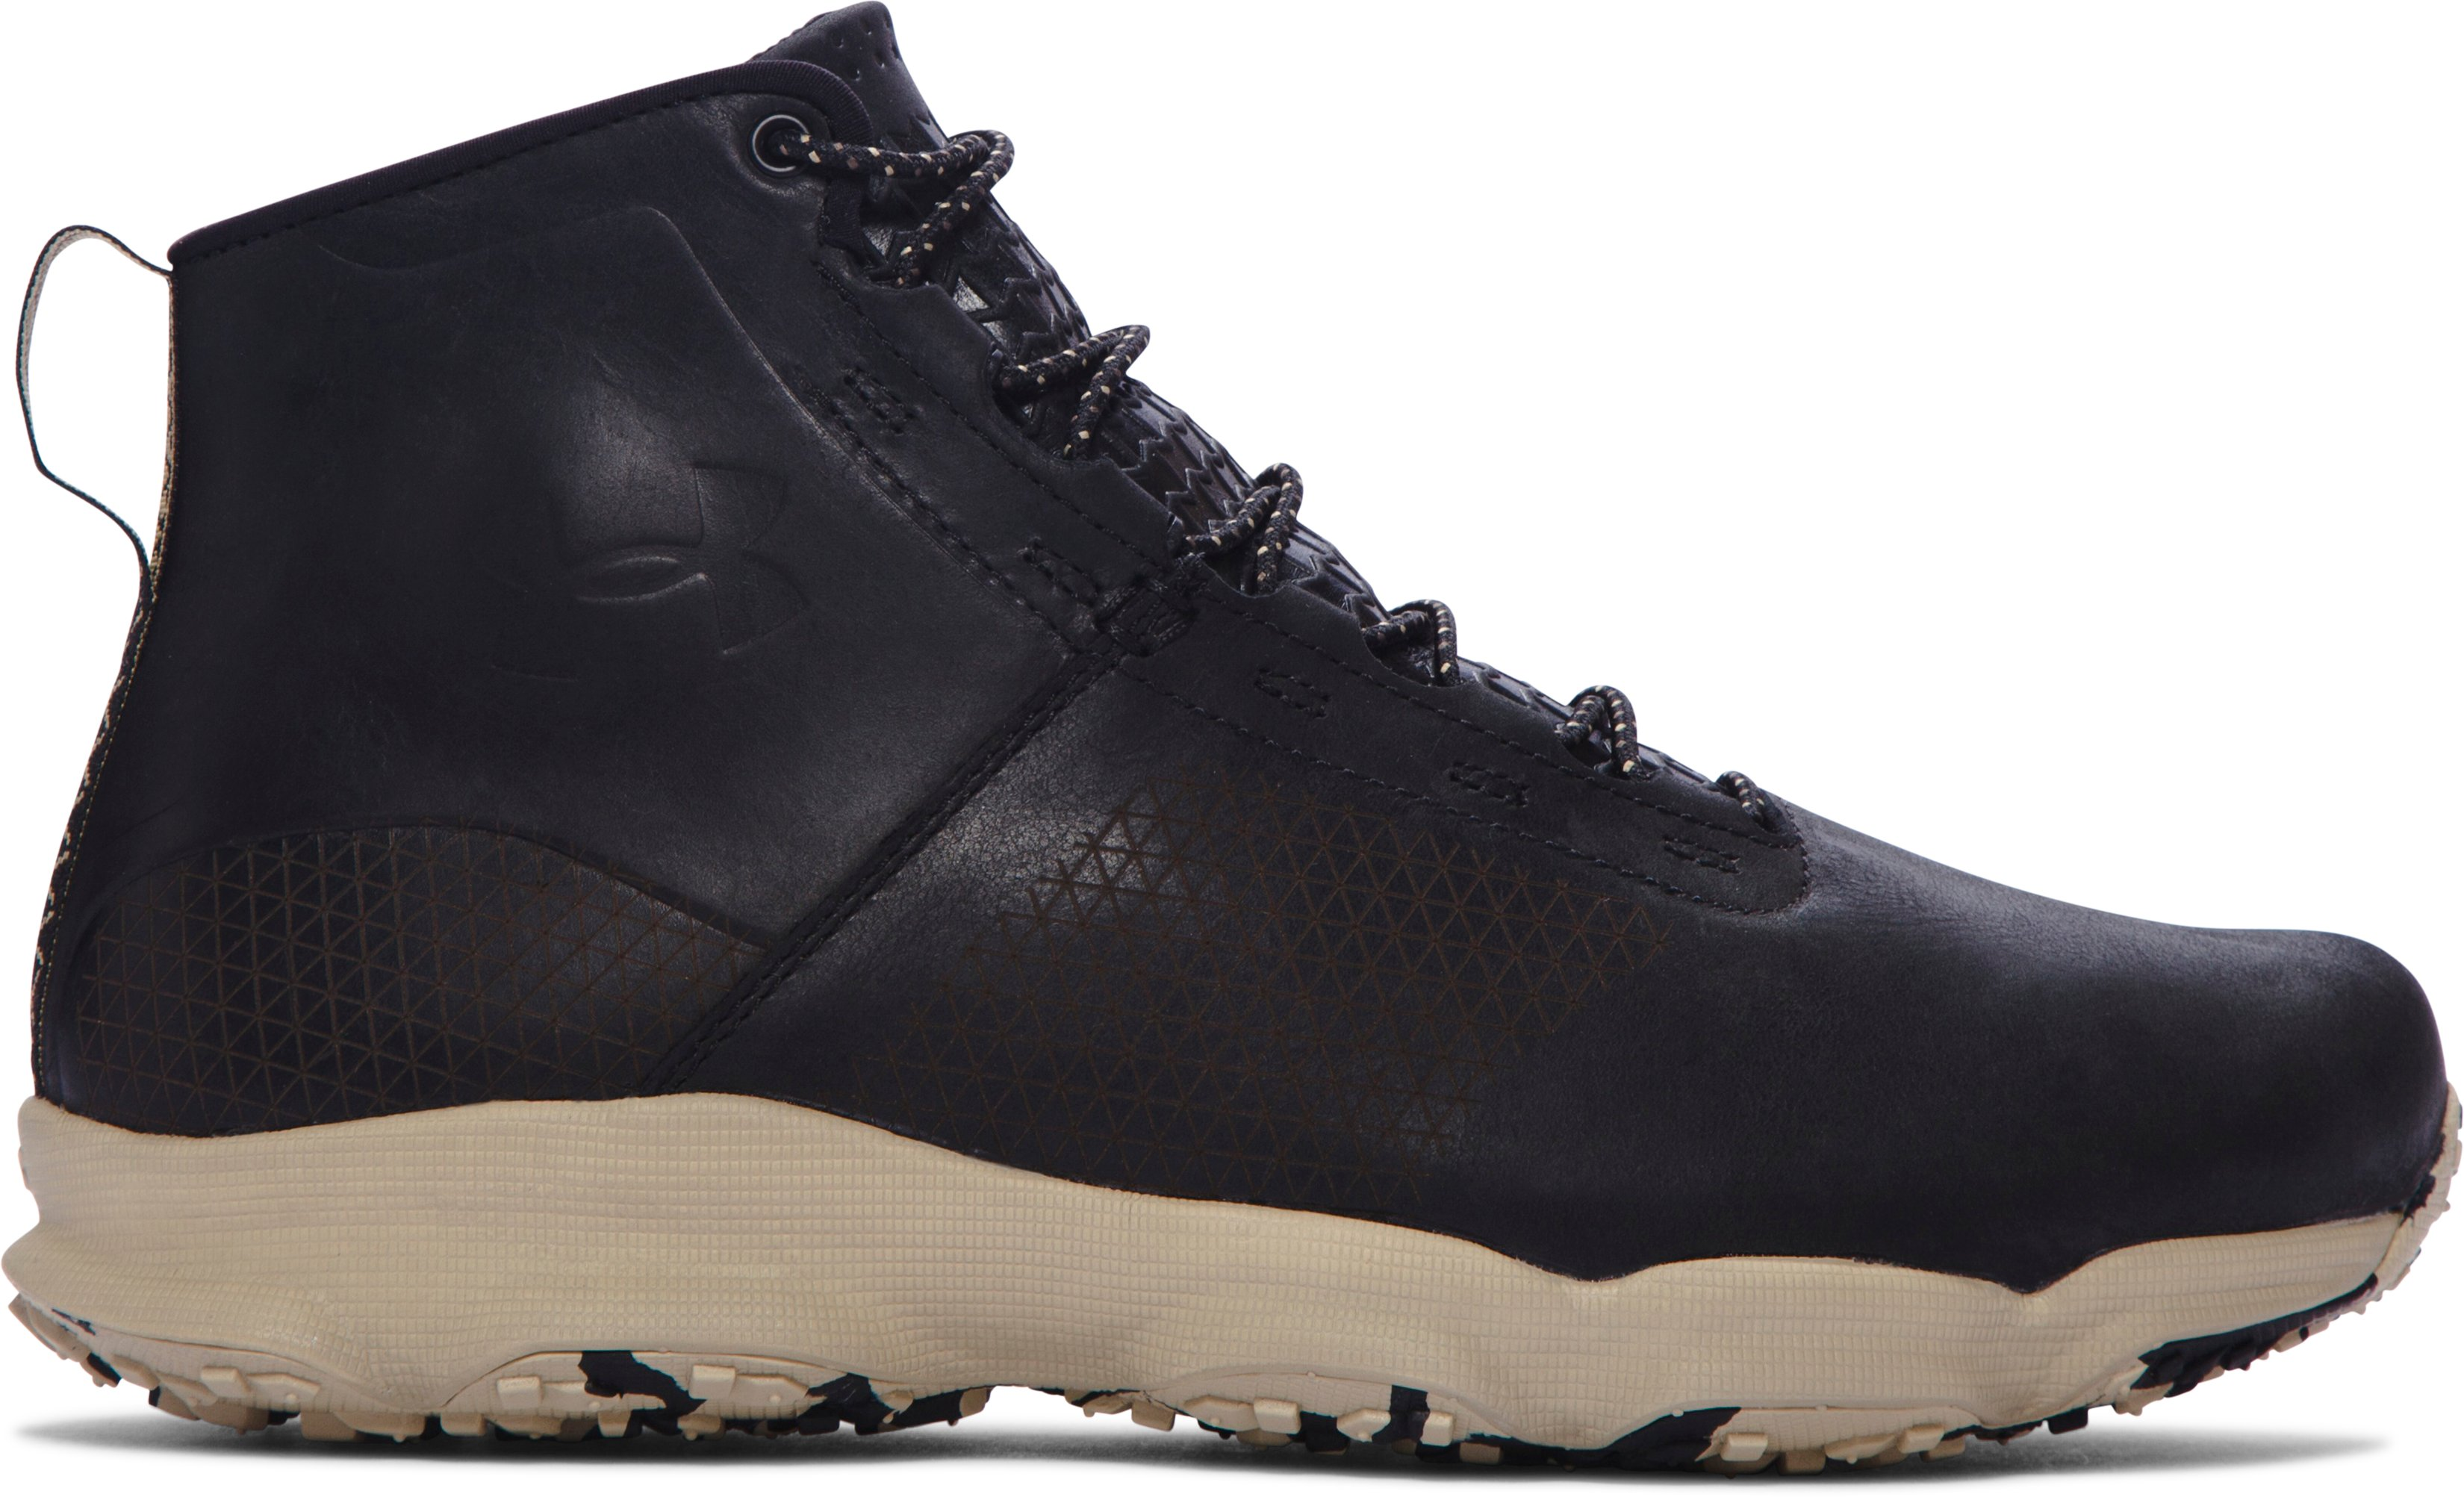 black leather boots Men's UA SpeedFit Hike Leather Boots great shoes...Arch support too high!...Look very good as well.